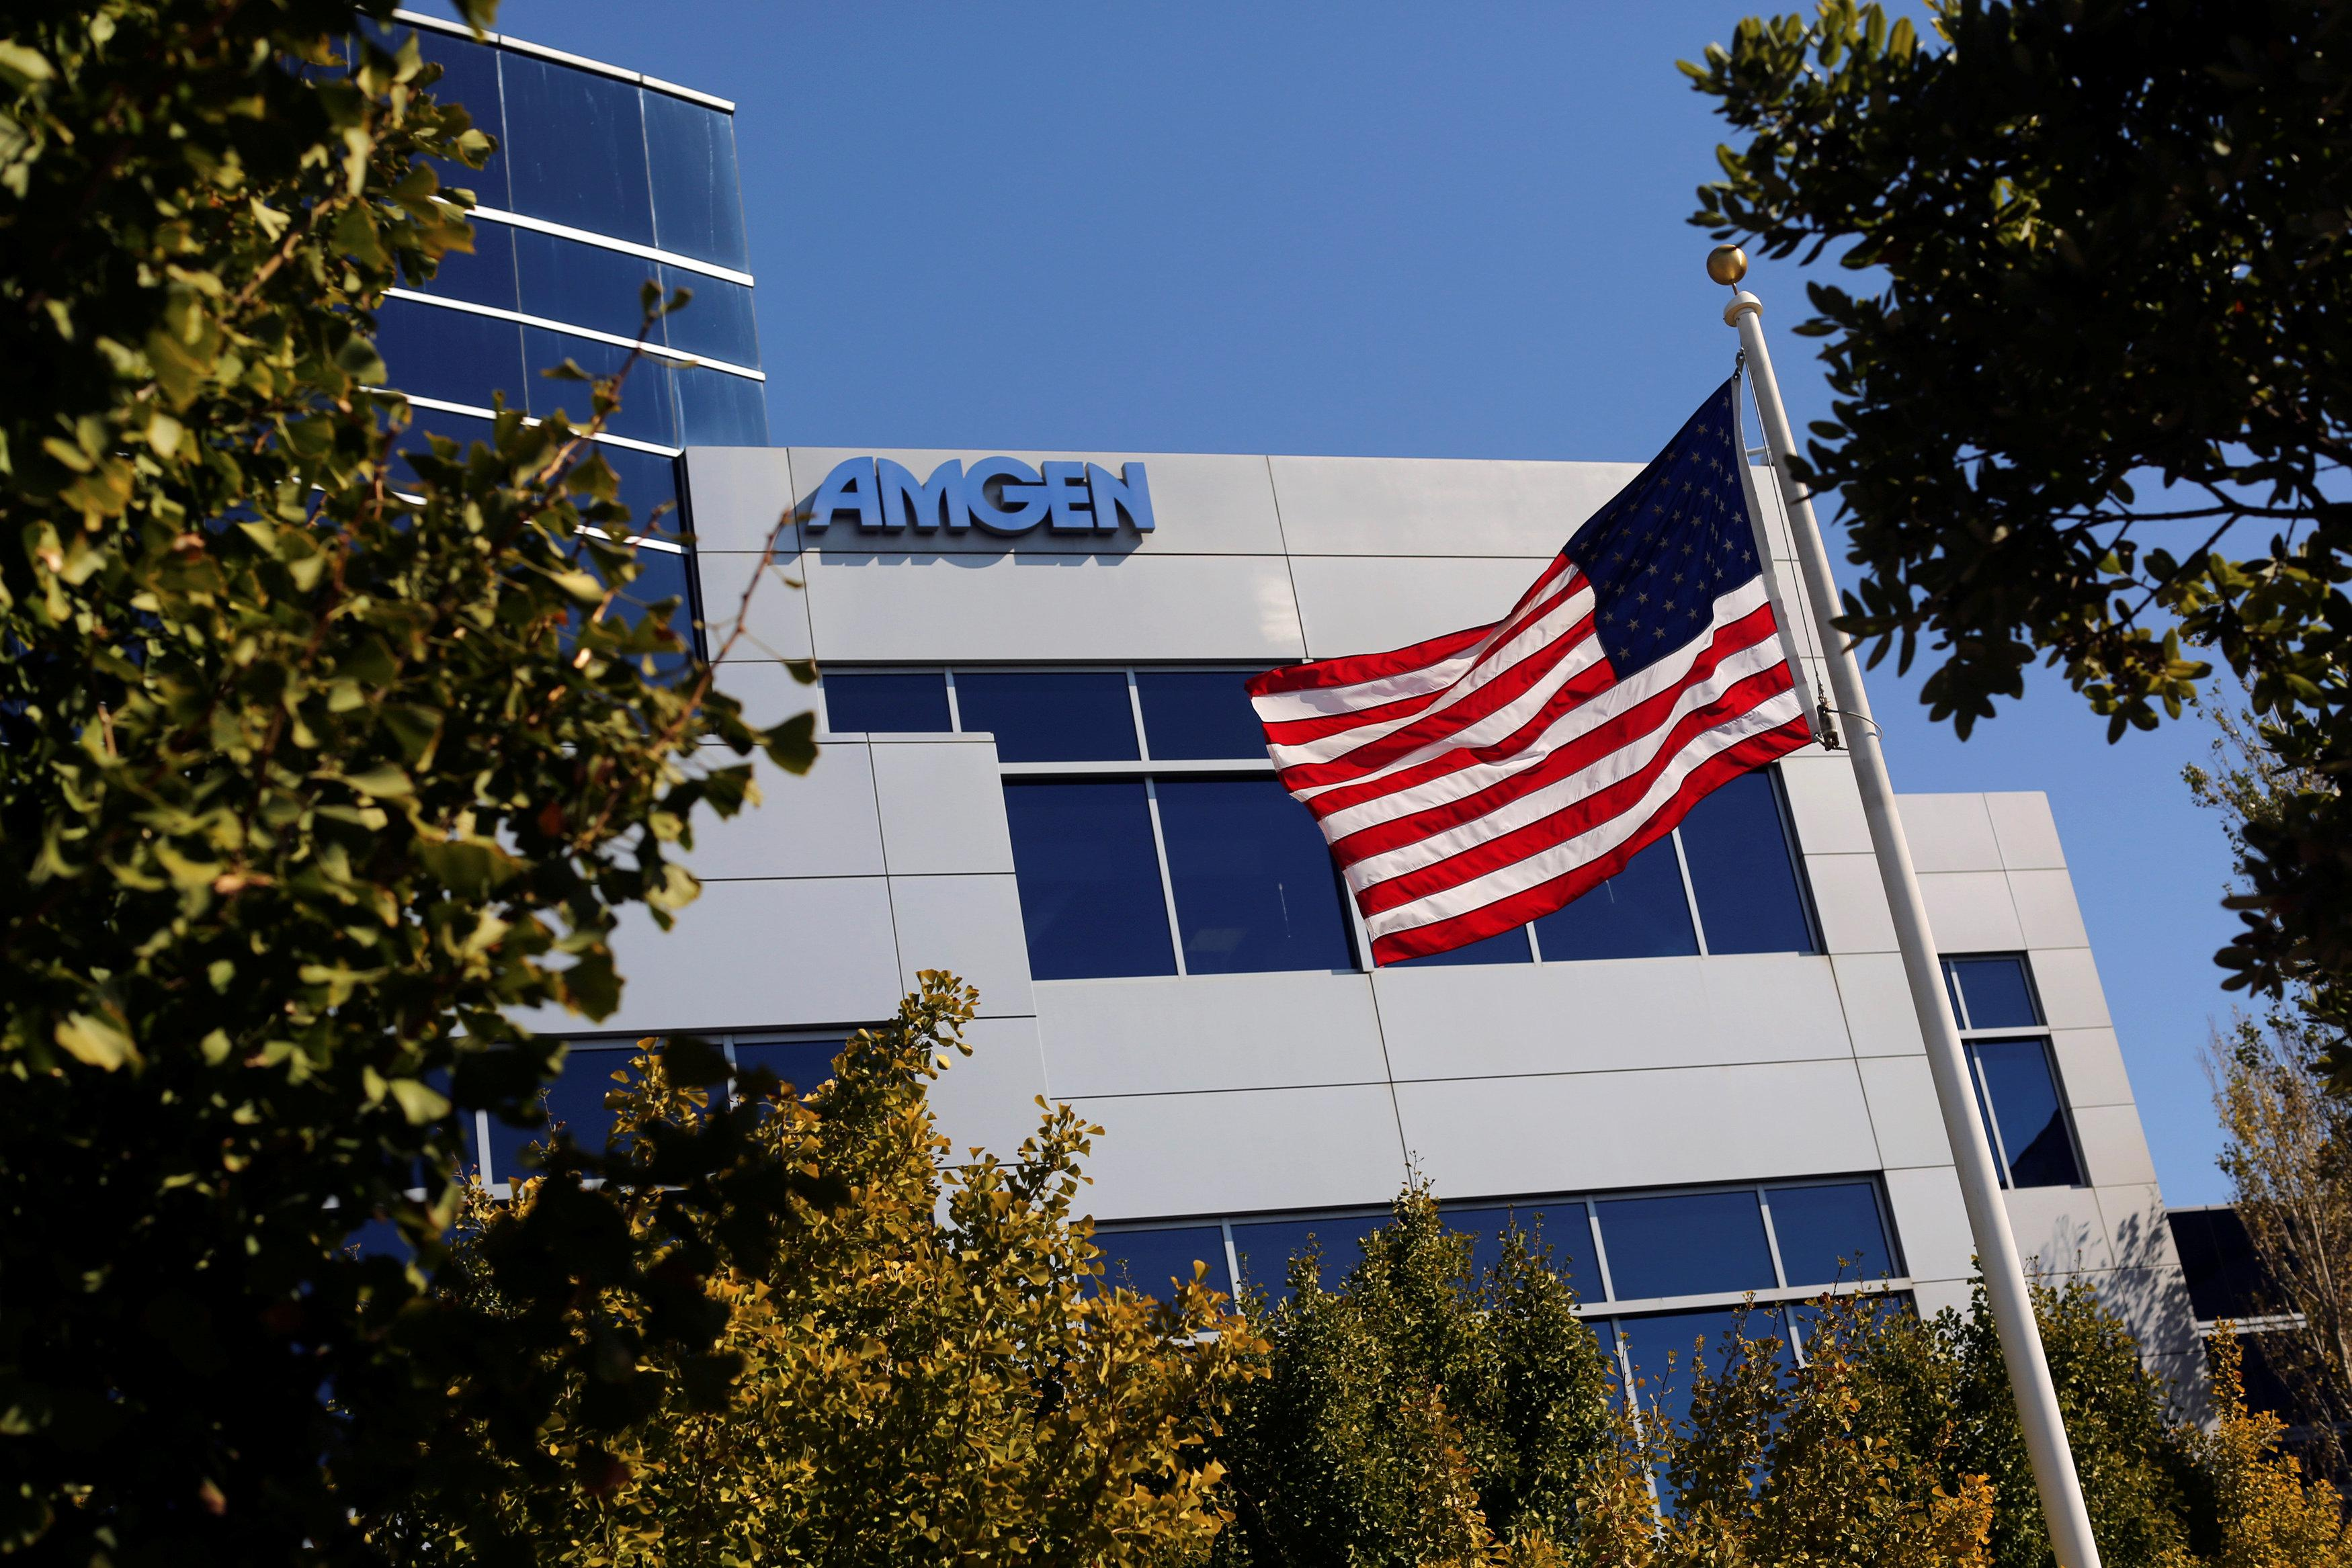 An Amgen sign is seen at the company's office in South San Francisco, California, U.S., October 21, 2013. Robert Galbraith